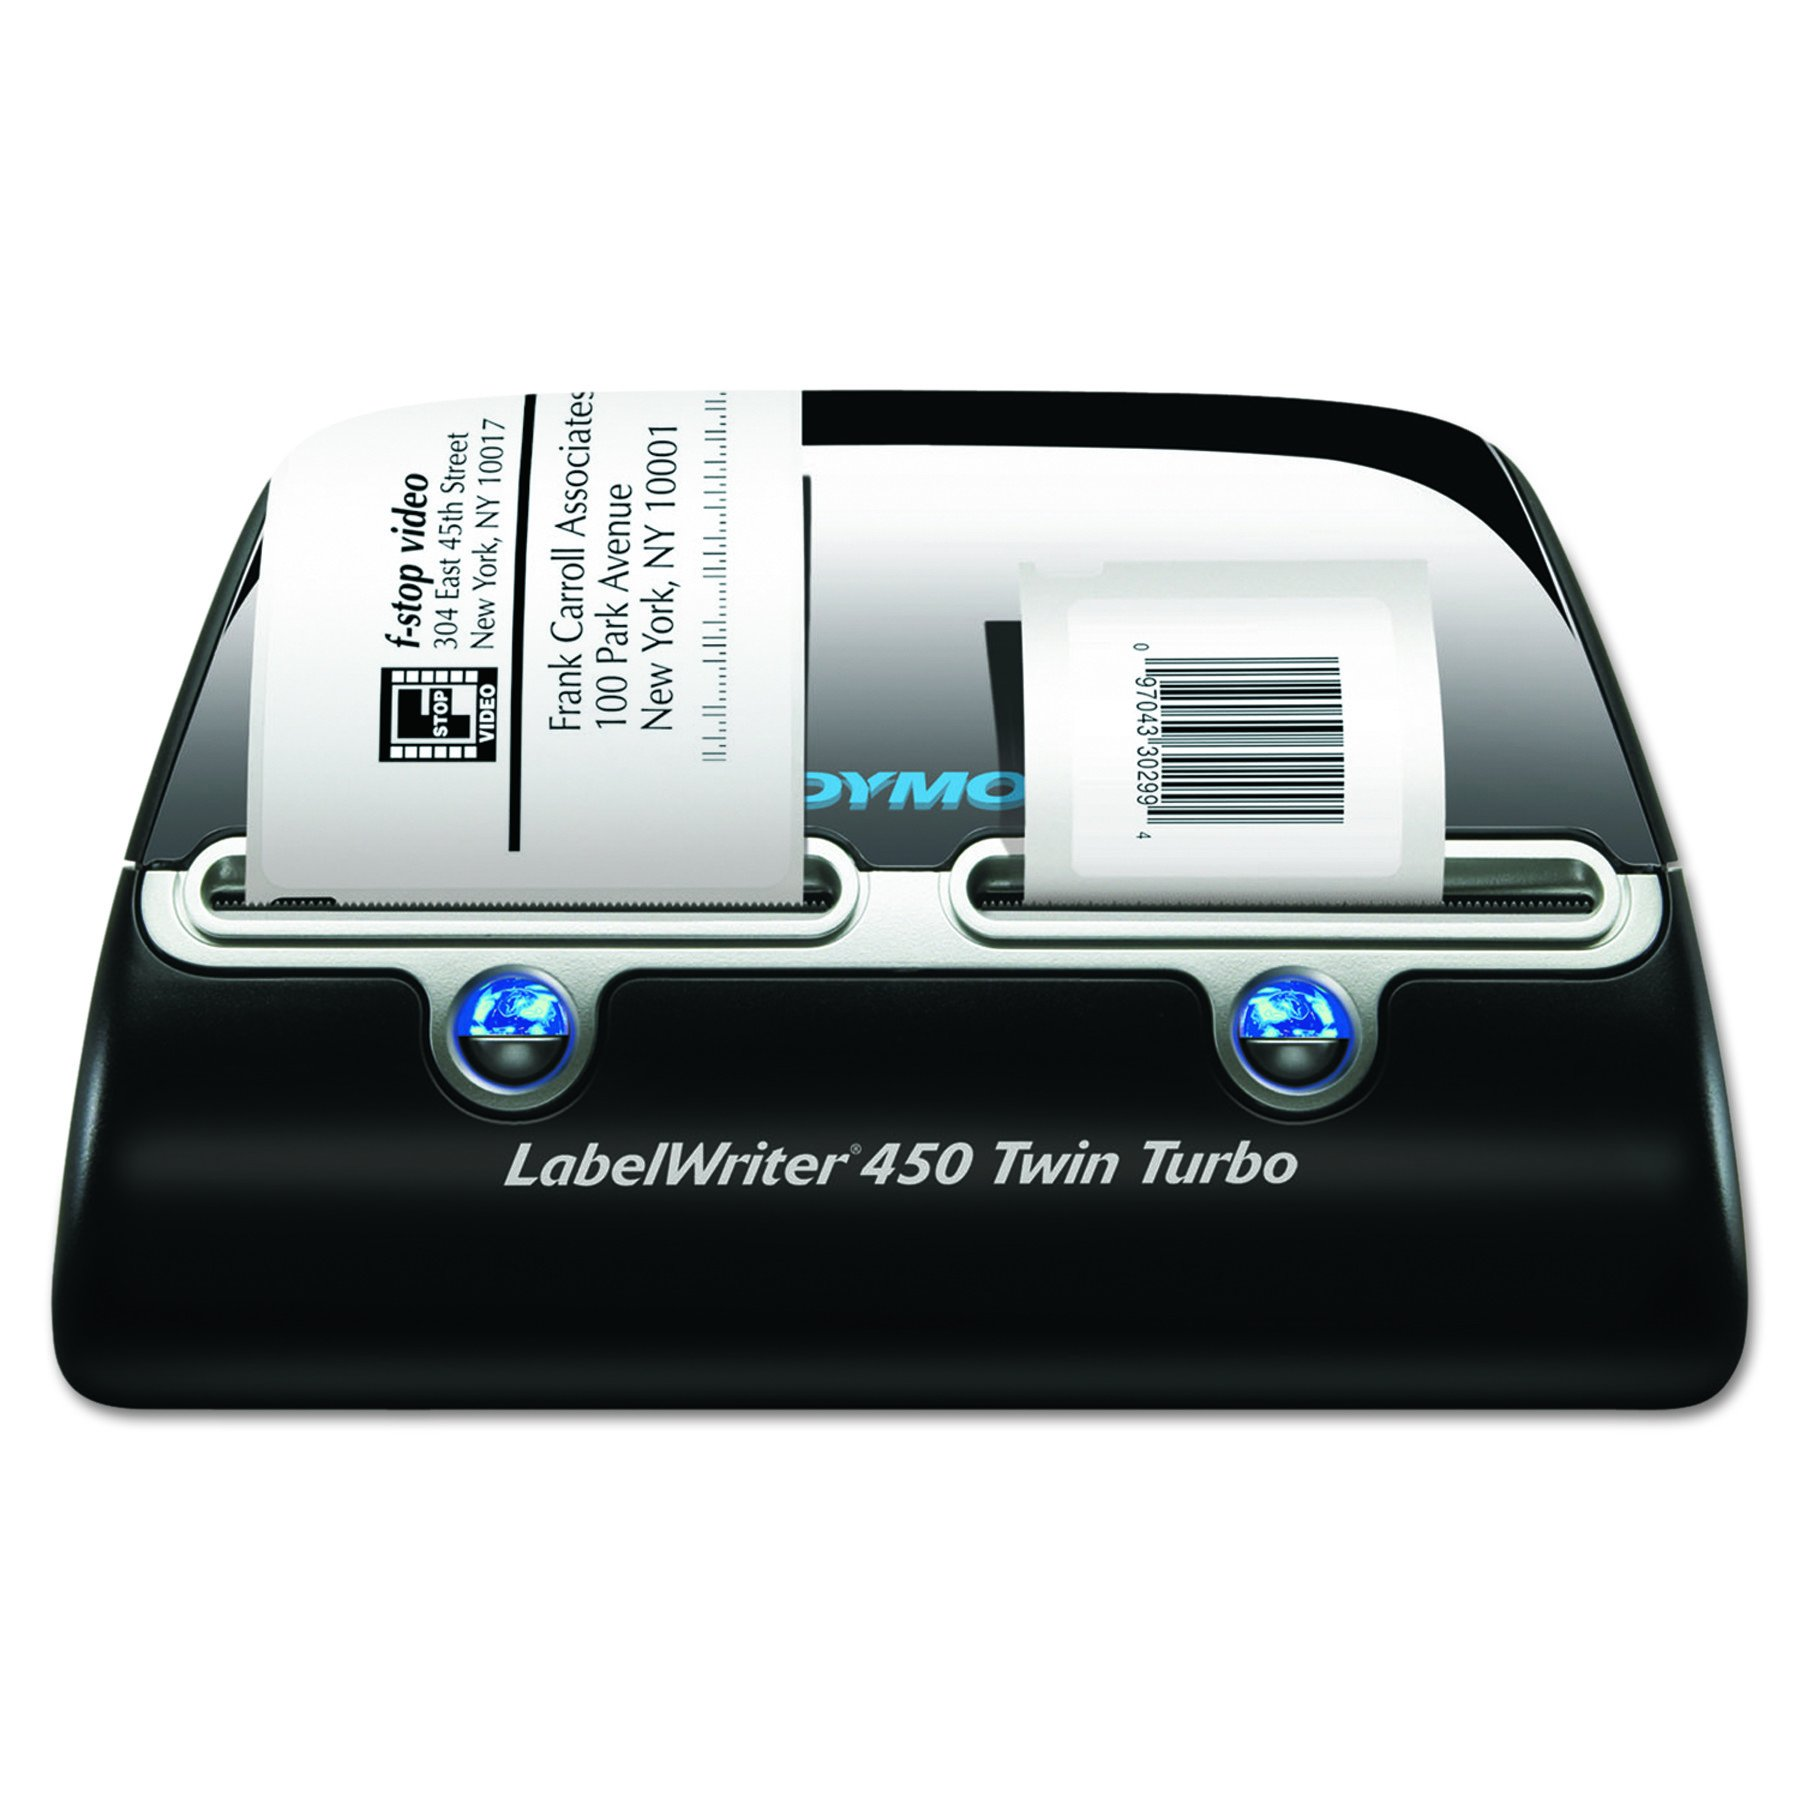 DYMO Label Writer 450 Twin Turbo label printer, 71 Labels Per Minute, Black/Silver (1752266) by DYMO